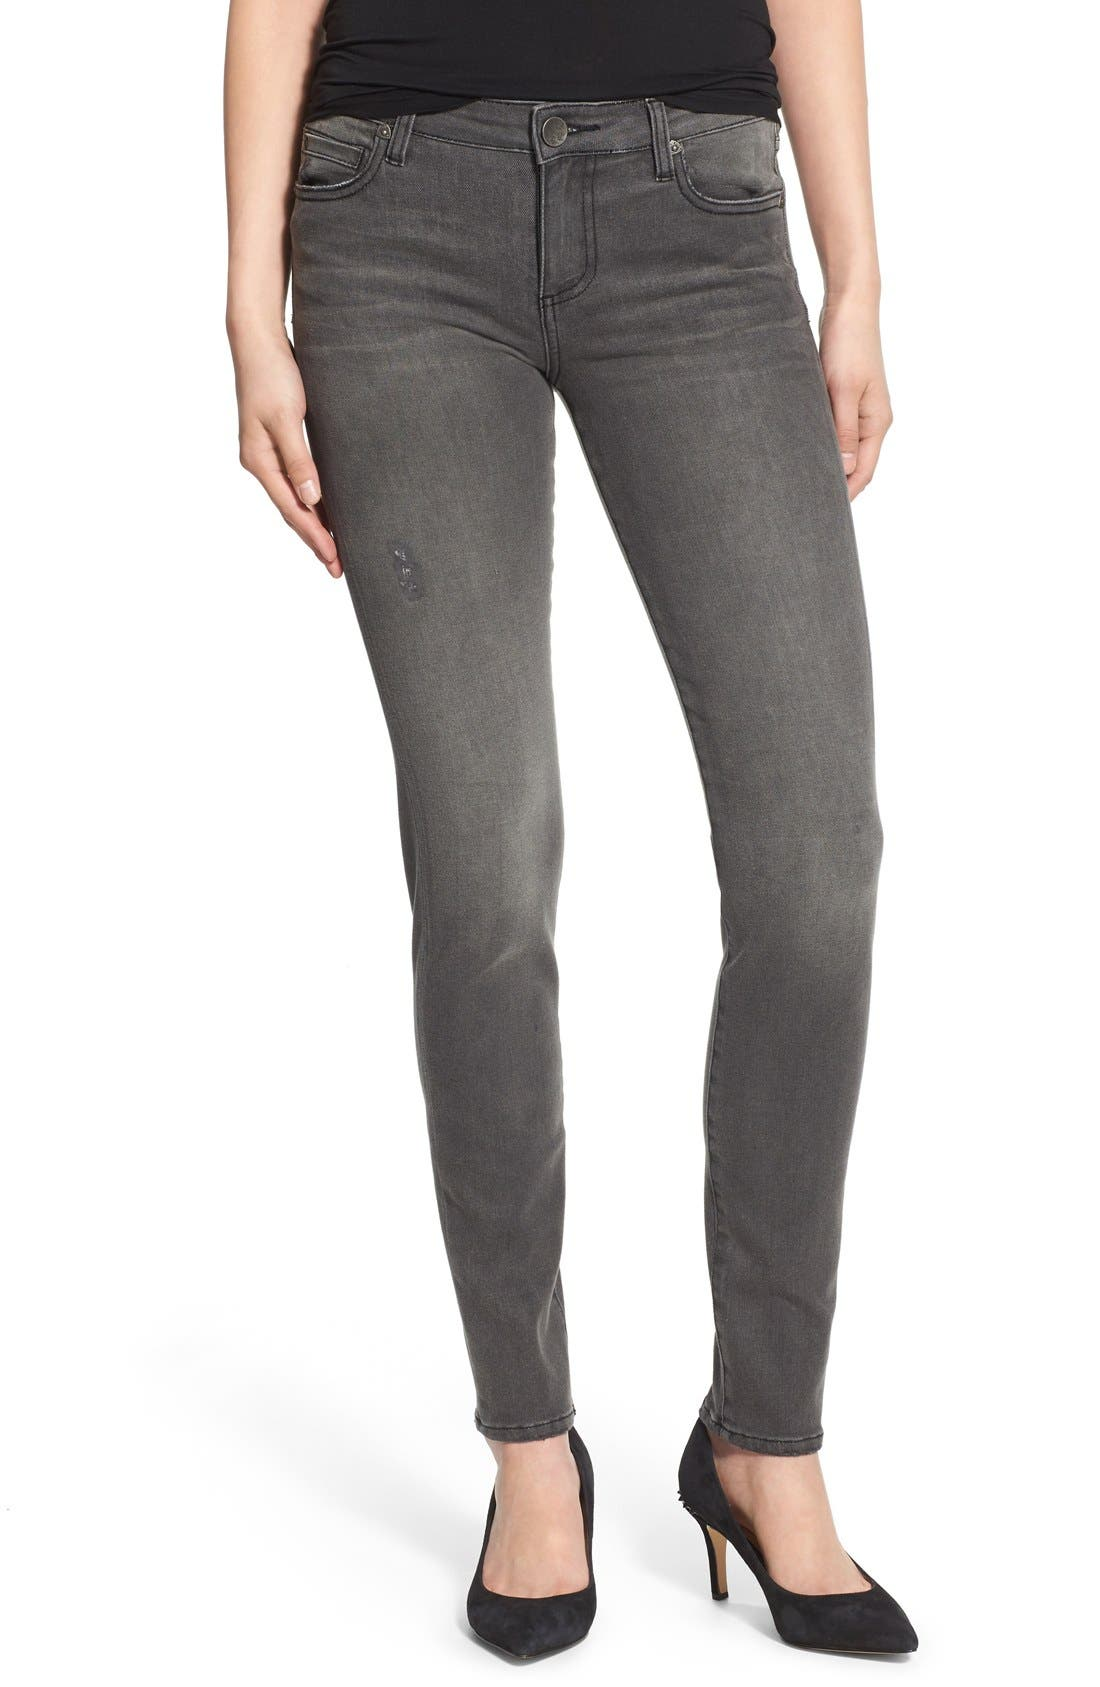 Main Image - KUT from the Kloth 'Diana' Stretch Skinny Jeans (Continuity) (Regular & Petite)